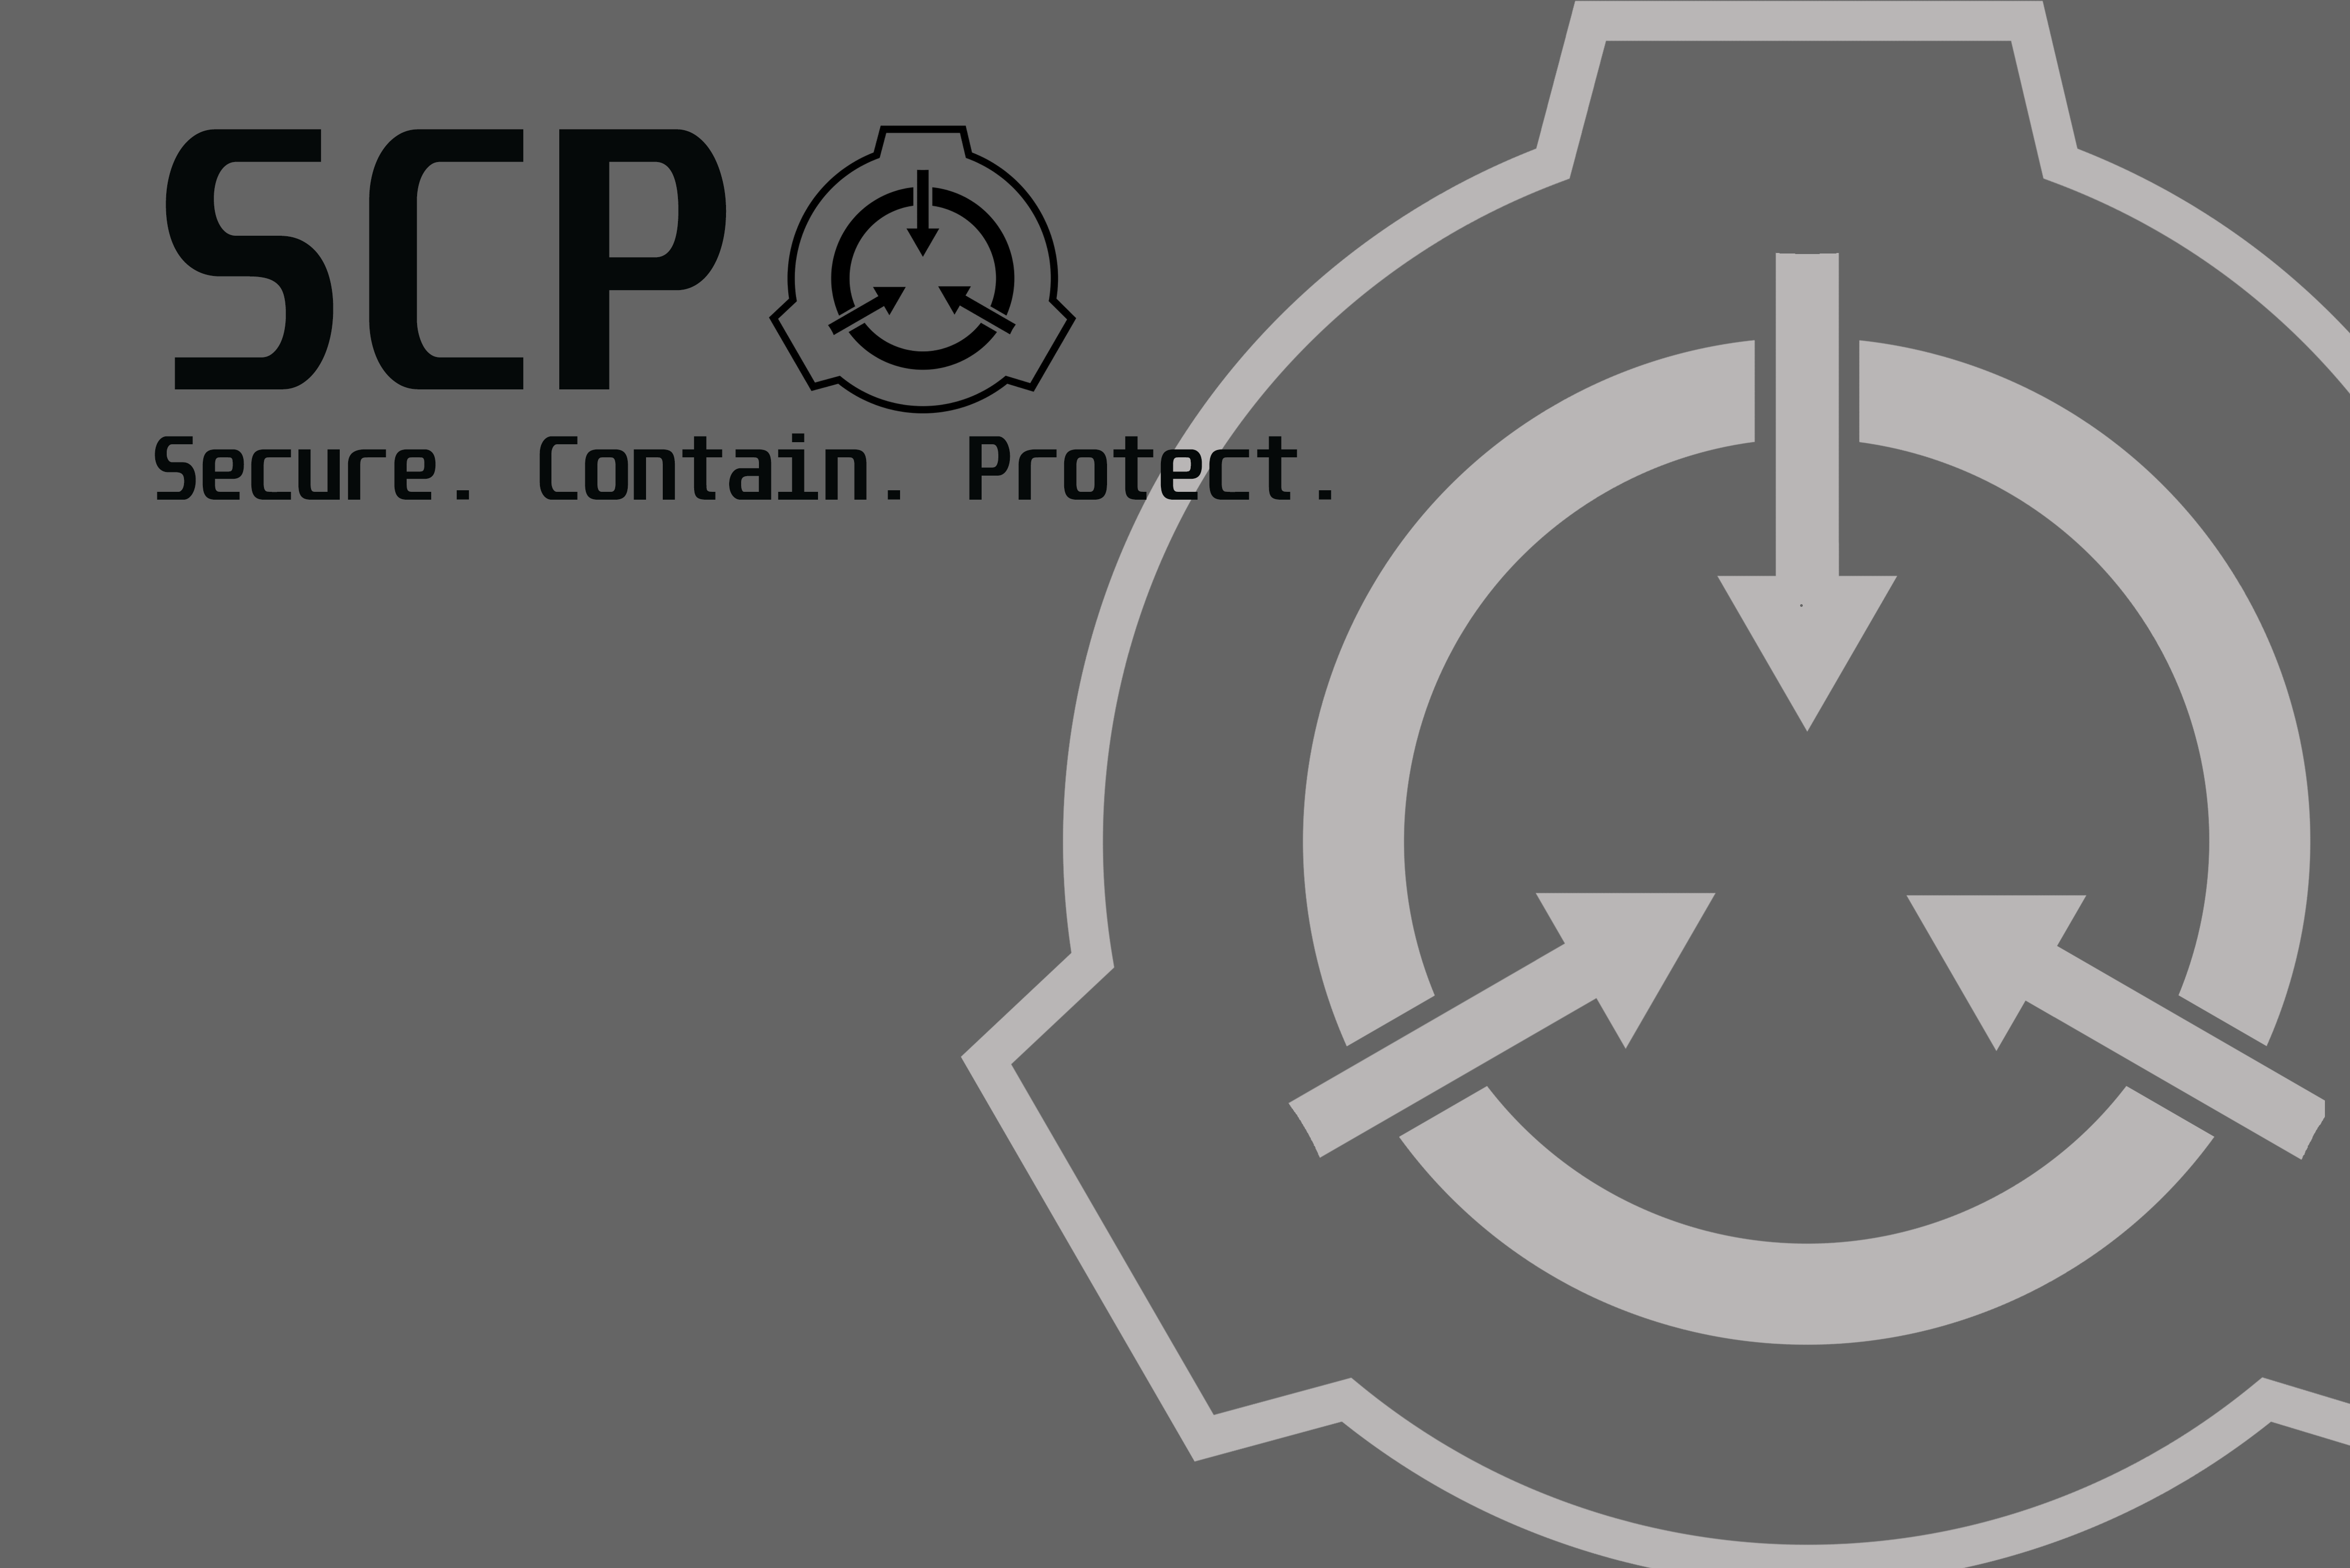 SCP-Ccard-Gray-01.png